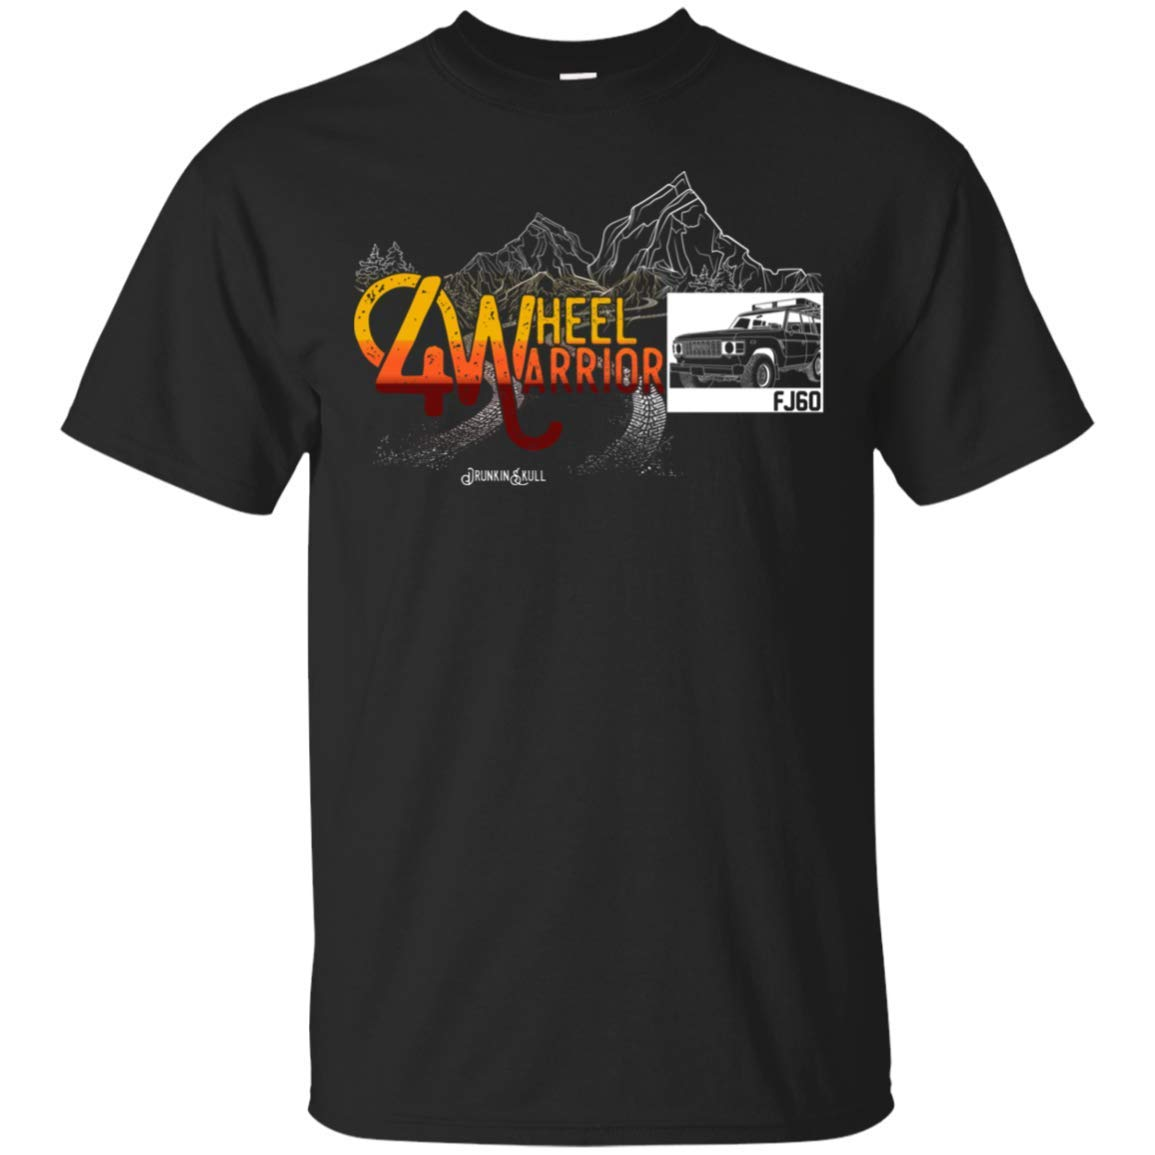 FJ60 Toyota Land Cruiser 4 Wheel Warrior T-Shirt